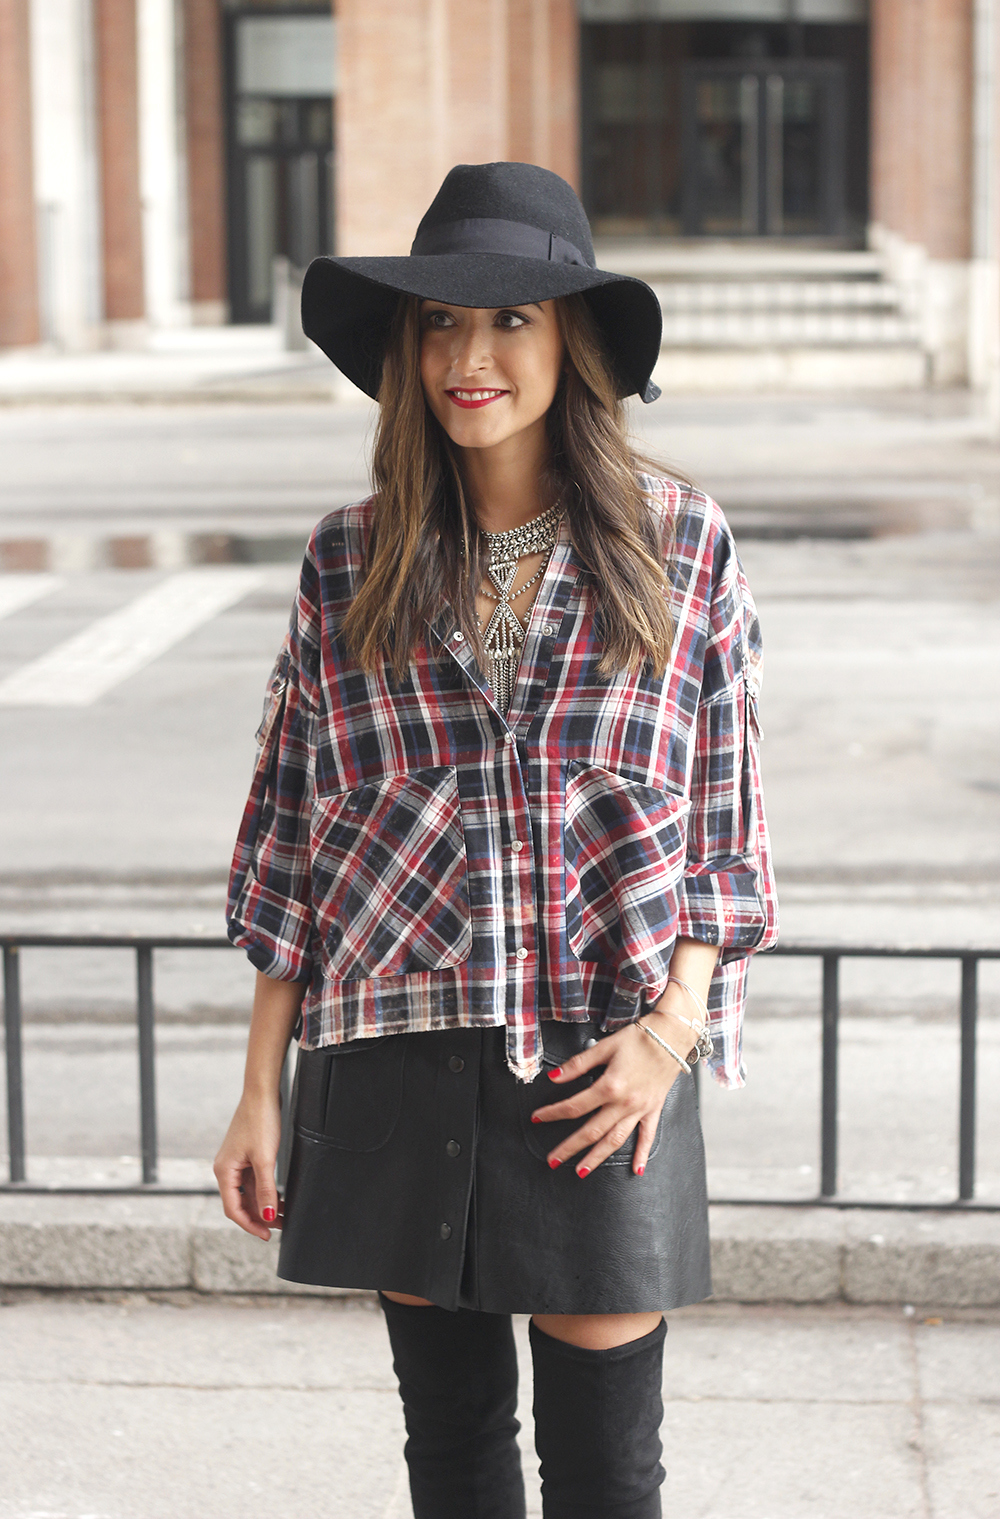 tartan shirt leather skirt over the knee boots accessories hat fashion outfit rainny day20